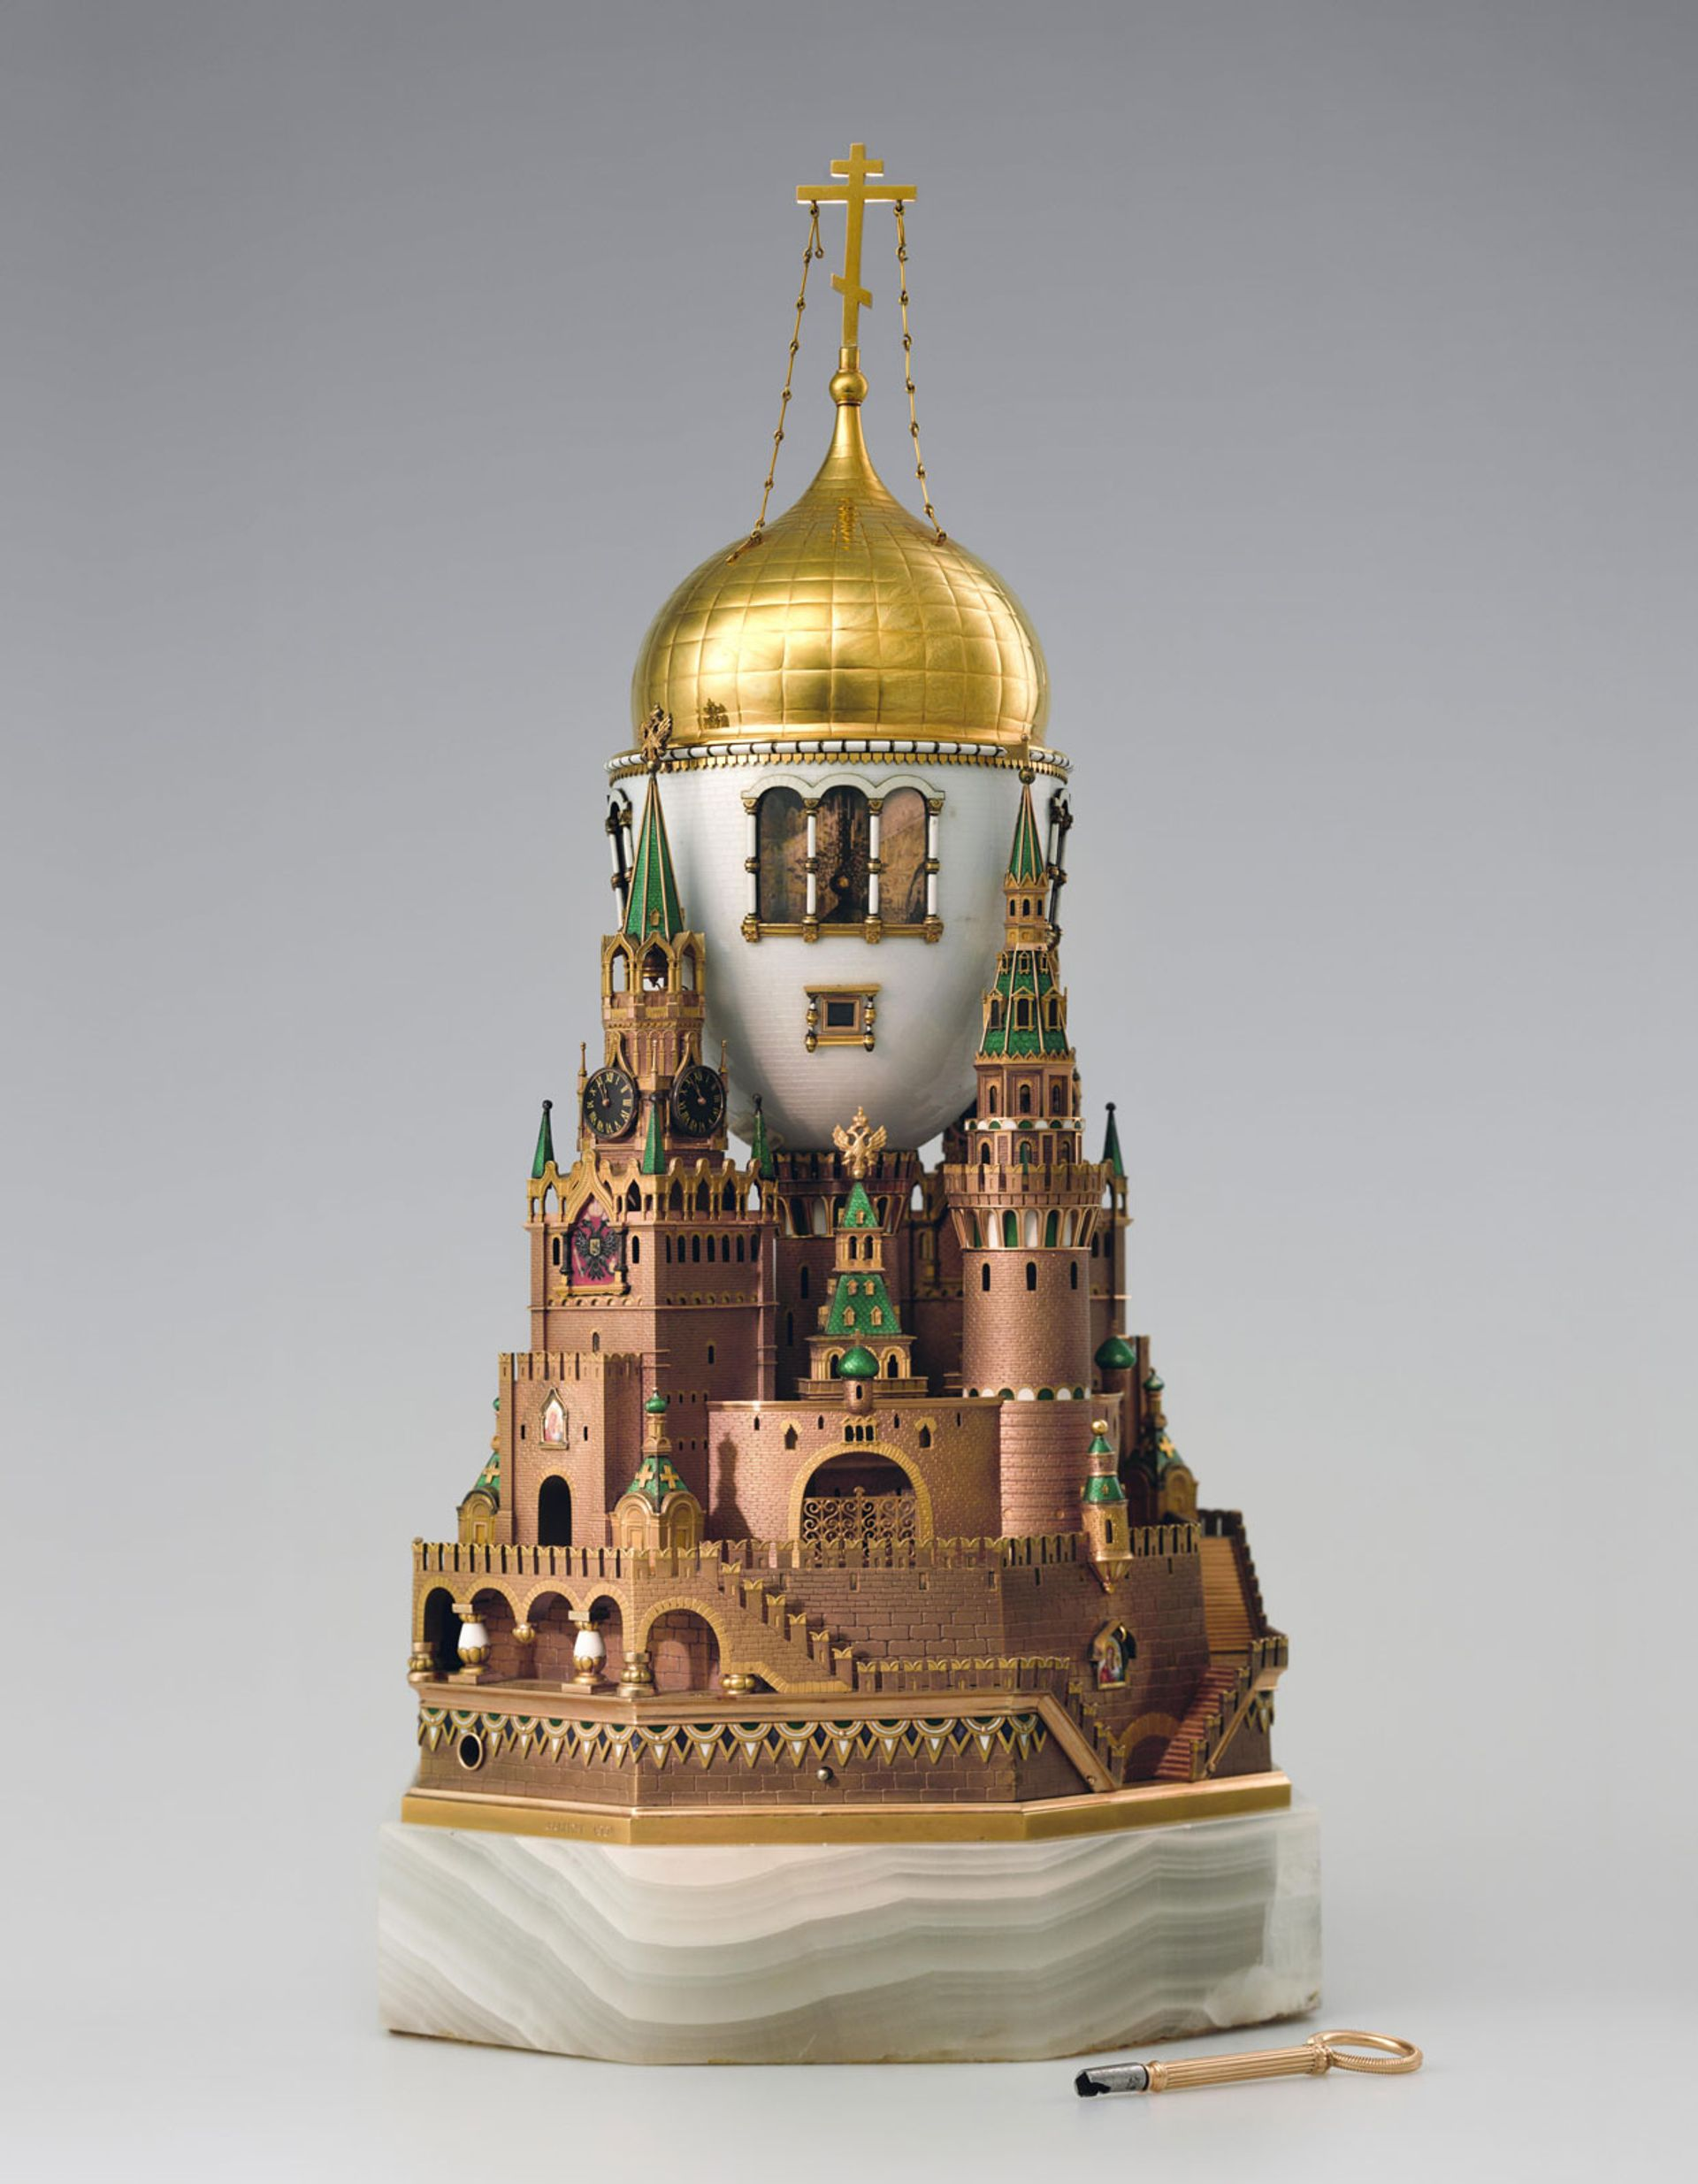 The Moscow Kremlin Easter egg (1904–06) made by the House of Fabergé was a gift from Nicholas II to Alexandra Feodorovna © Moscow Kremlin Museums